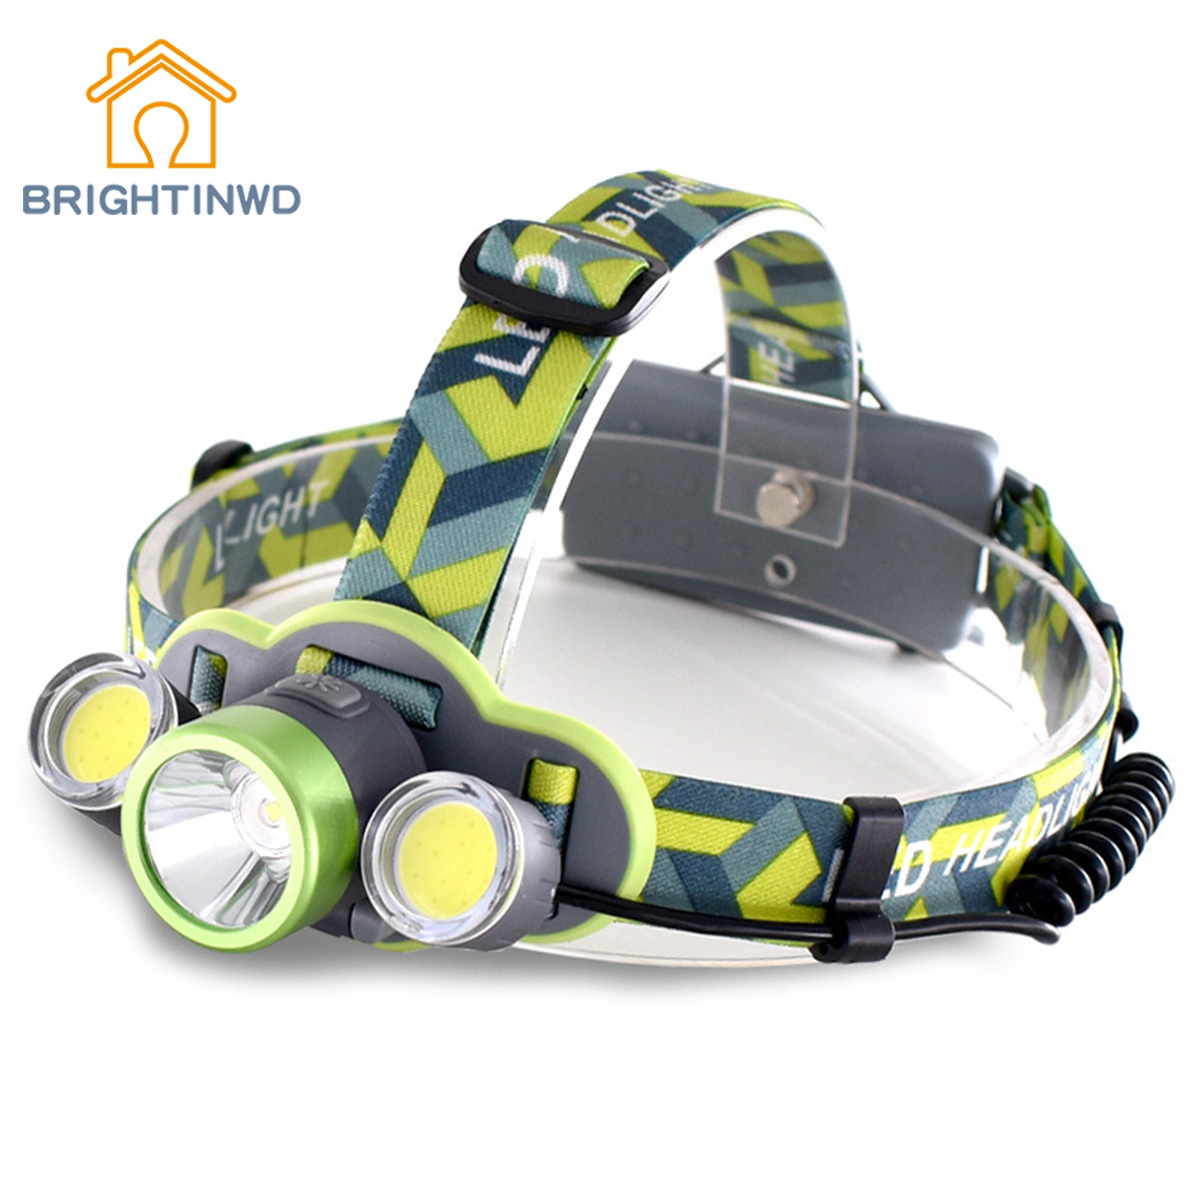 BRIGHTINWD New Three Head Light LED Headlight USB Charging Super Bright Mining Work Head Lamp Camping Night Riding Headlights ...